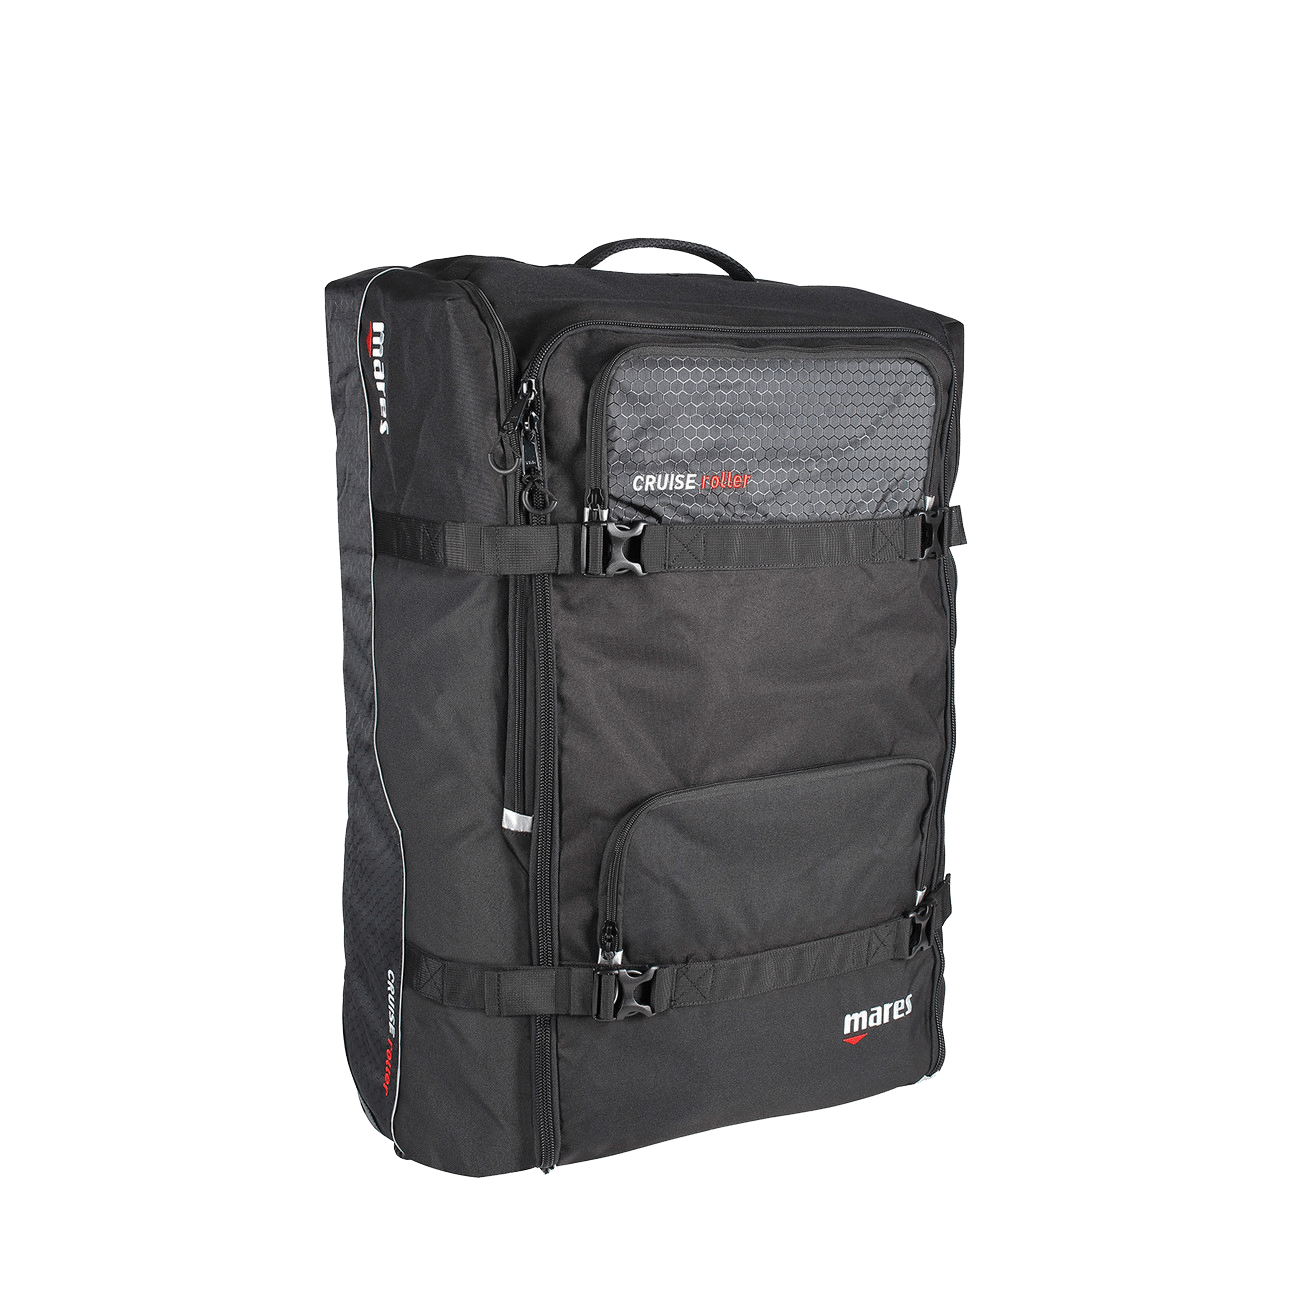 Mares Cruise Roller Bag | Mares Bags | Mares Singapore